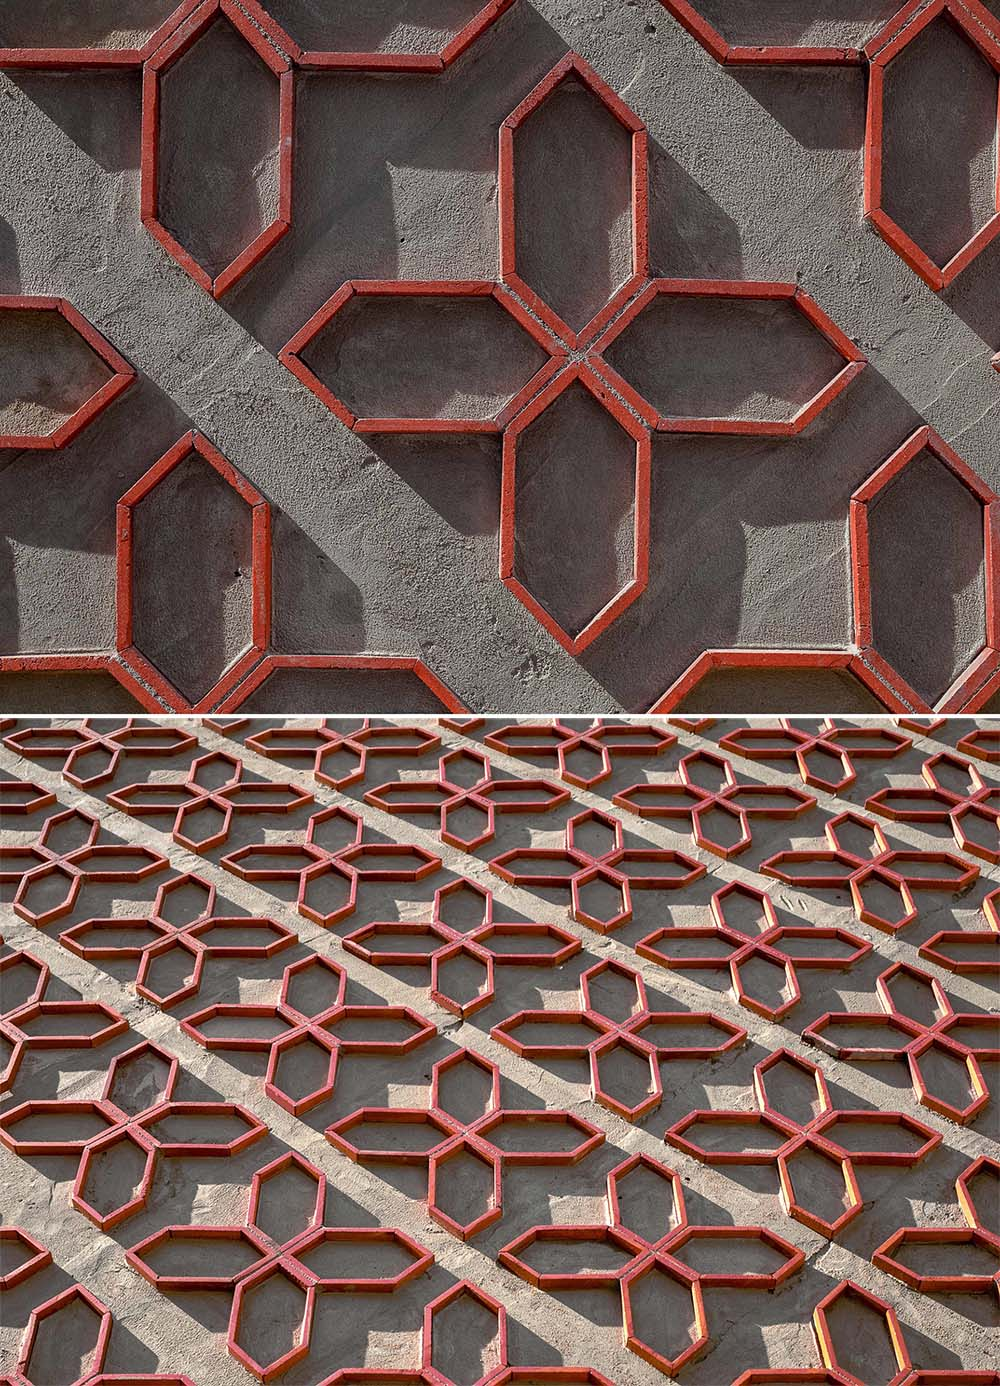 A patterned wall made from cut clay roof tiles.